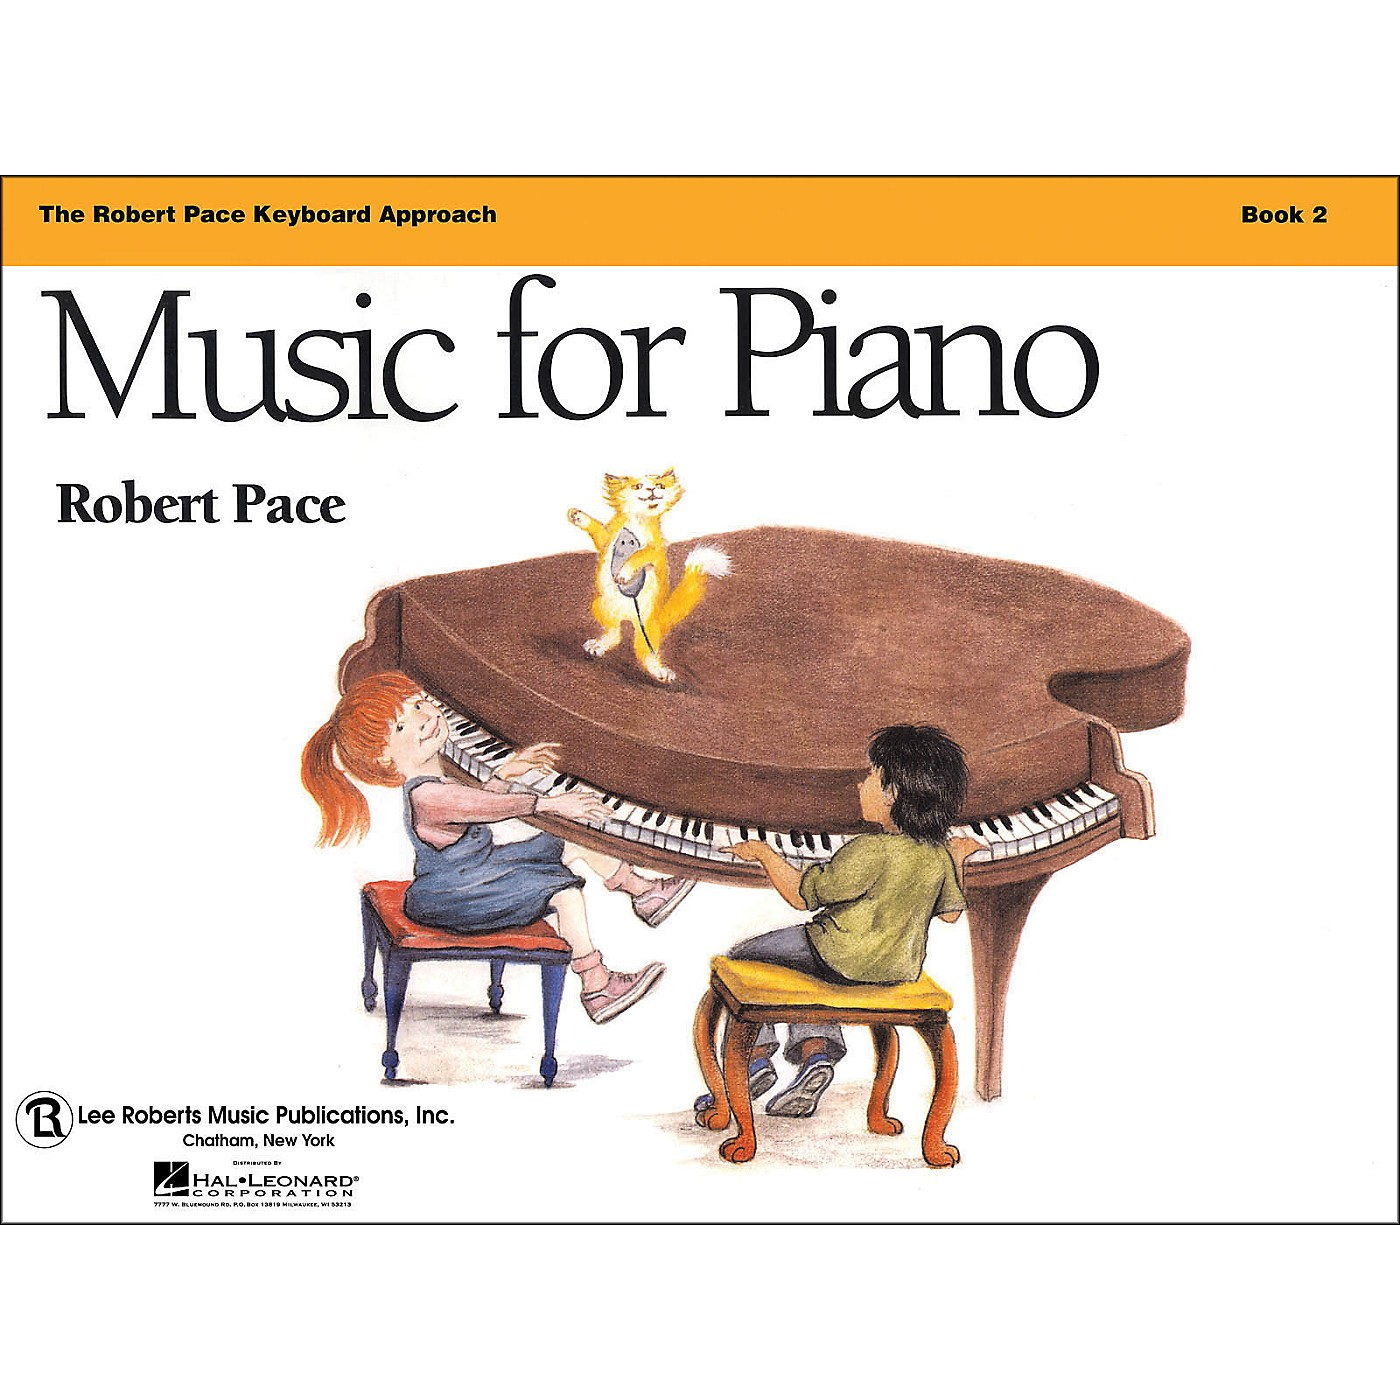 Hal Leonard Music for Piano - Book 2 Revised, Robert Pace Keyboard thumbnail